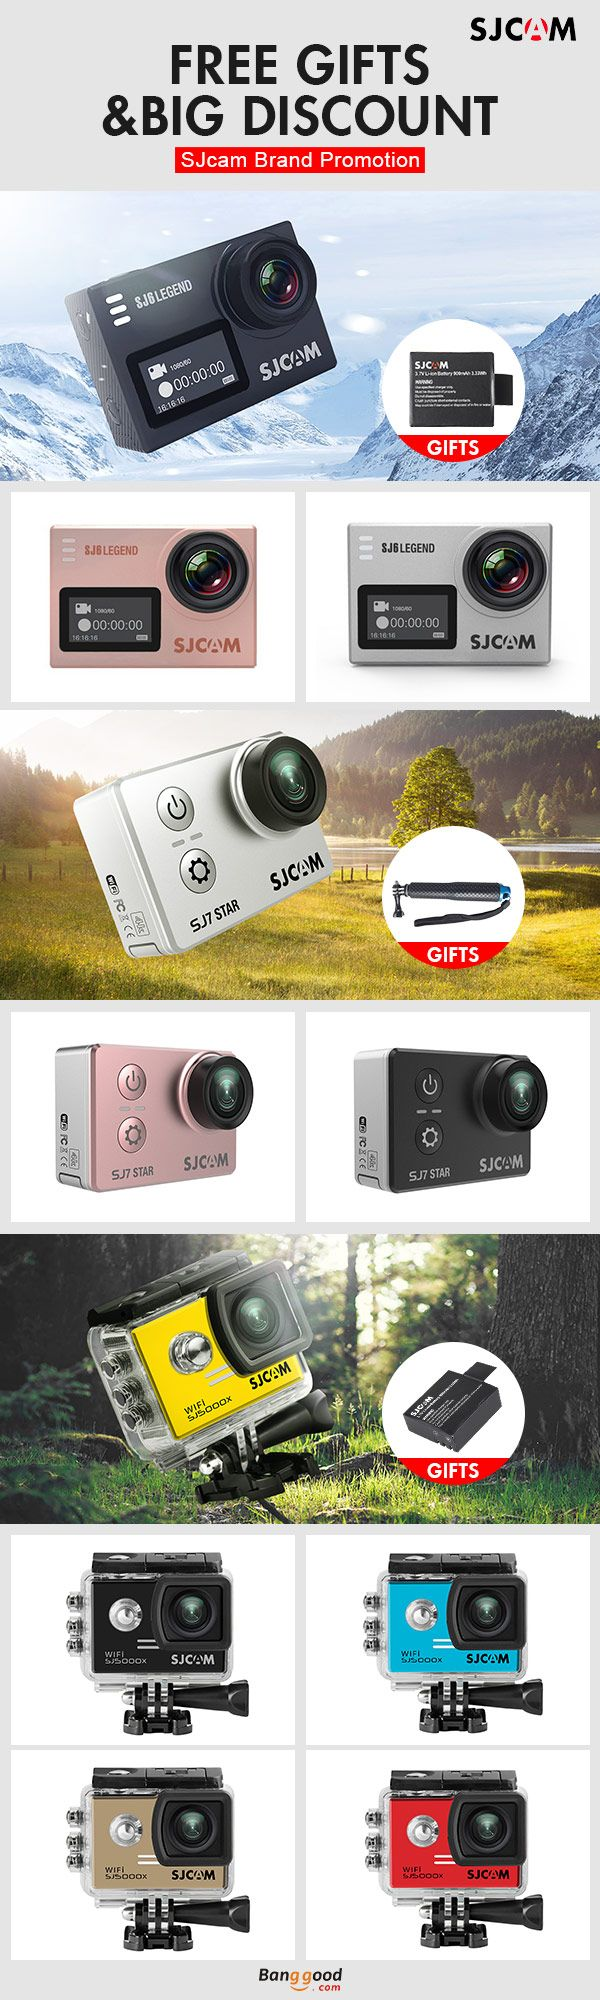 Anniversary Sales: From 9.7 - 9.10. Camera, Car Camera, DVR, DVR Camera, Security Camera, Spy Camera, Sports Camera. Visit and Discover More!